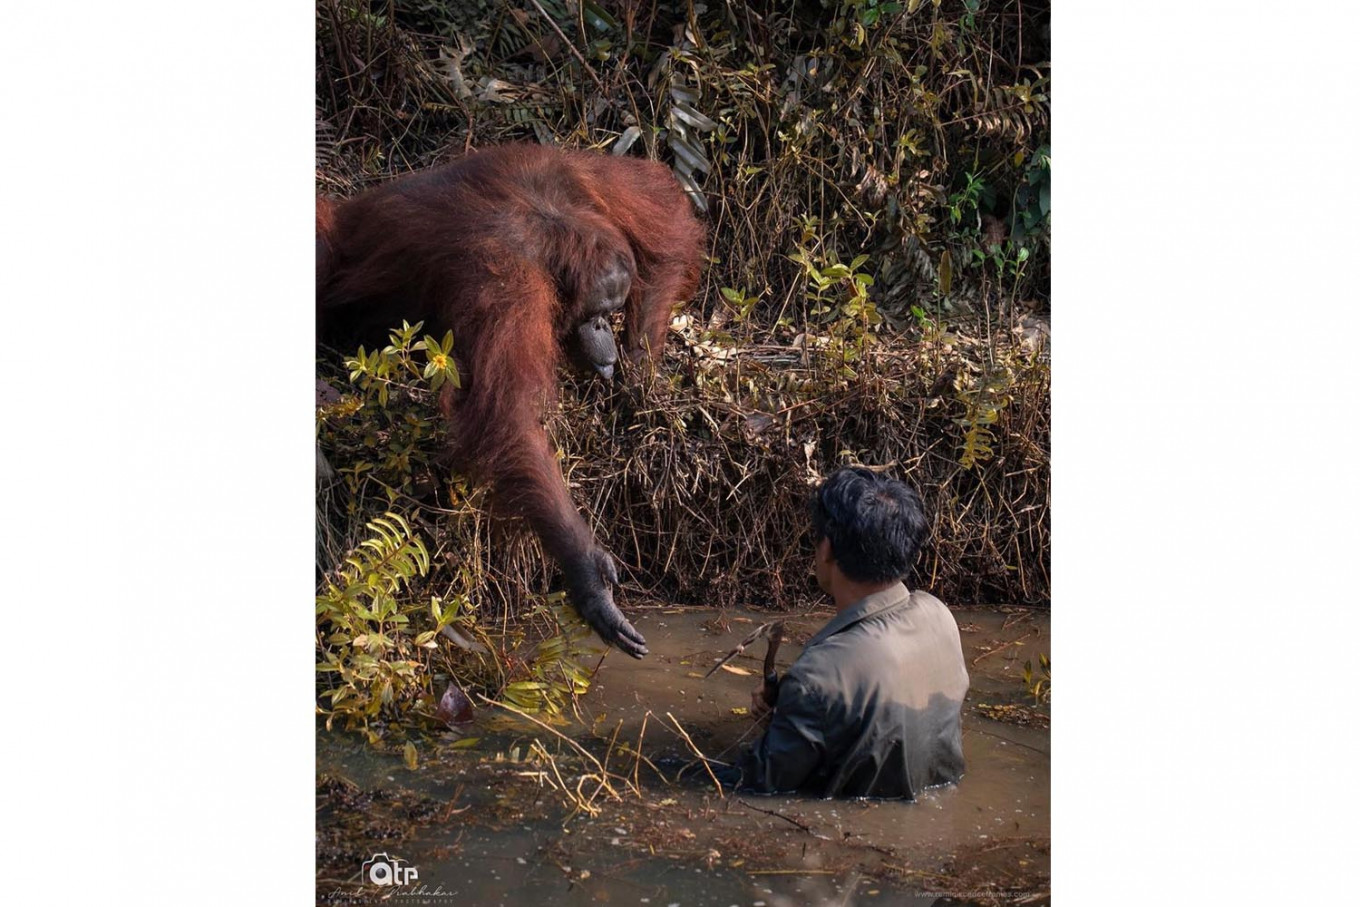 More than meets the eye in photo of orangutan 'offering help' to man